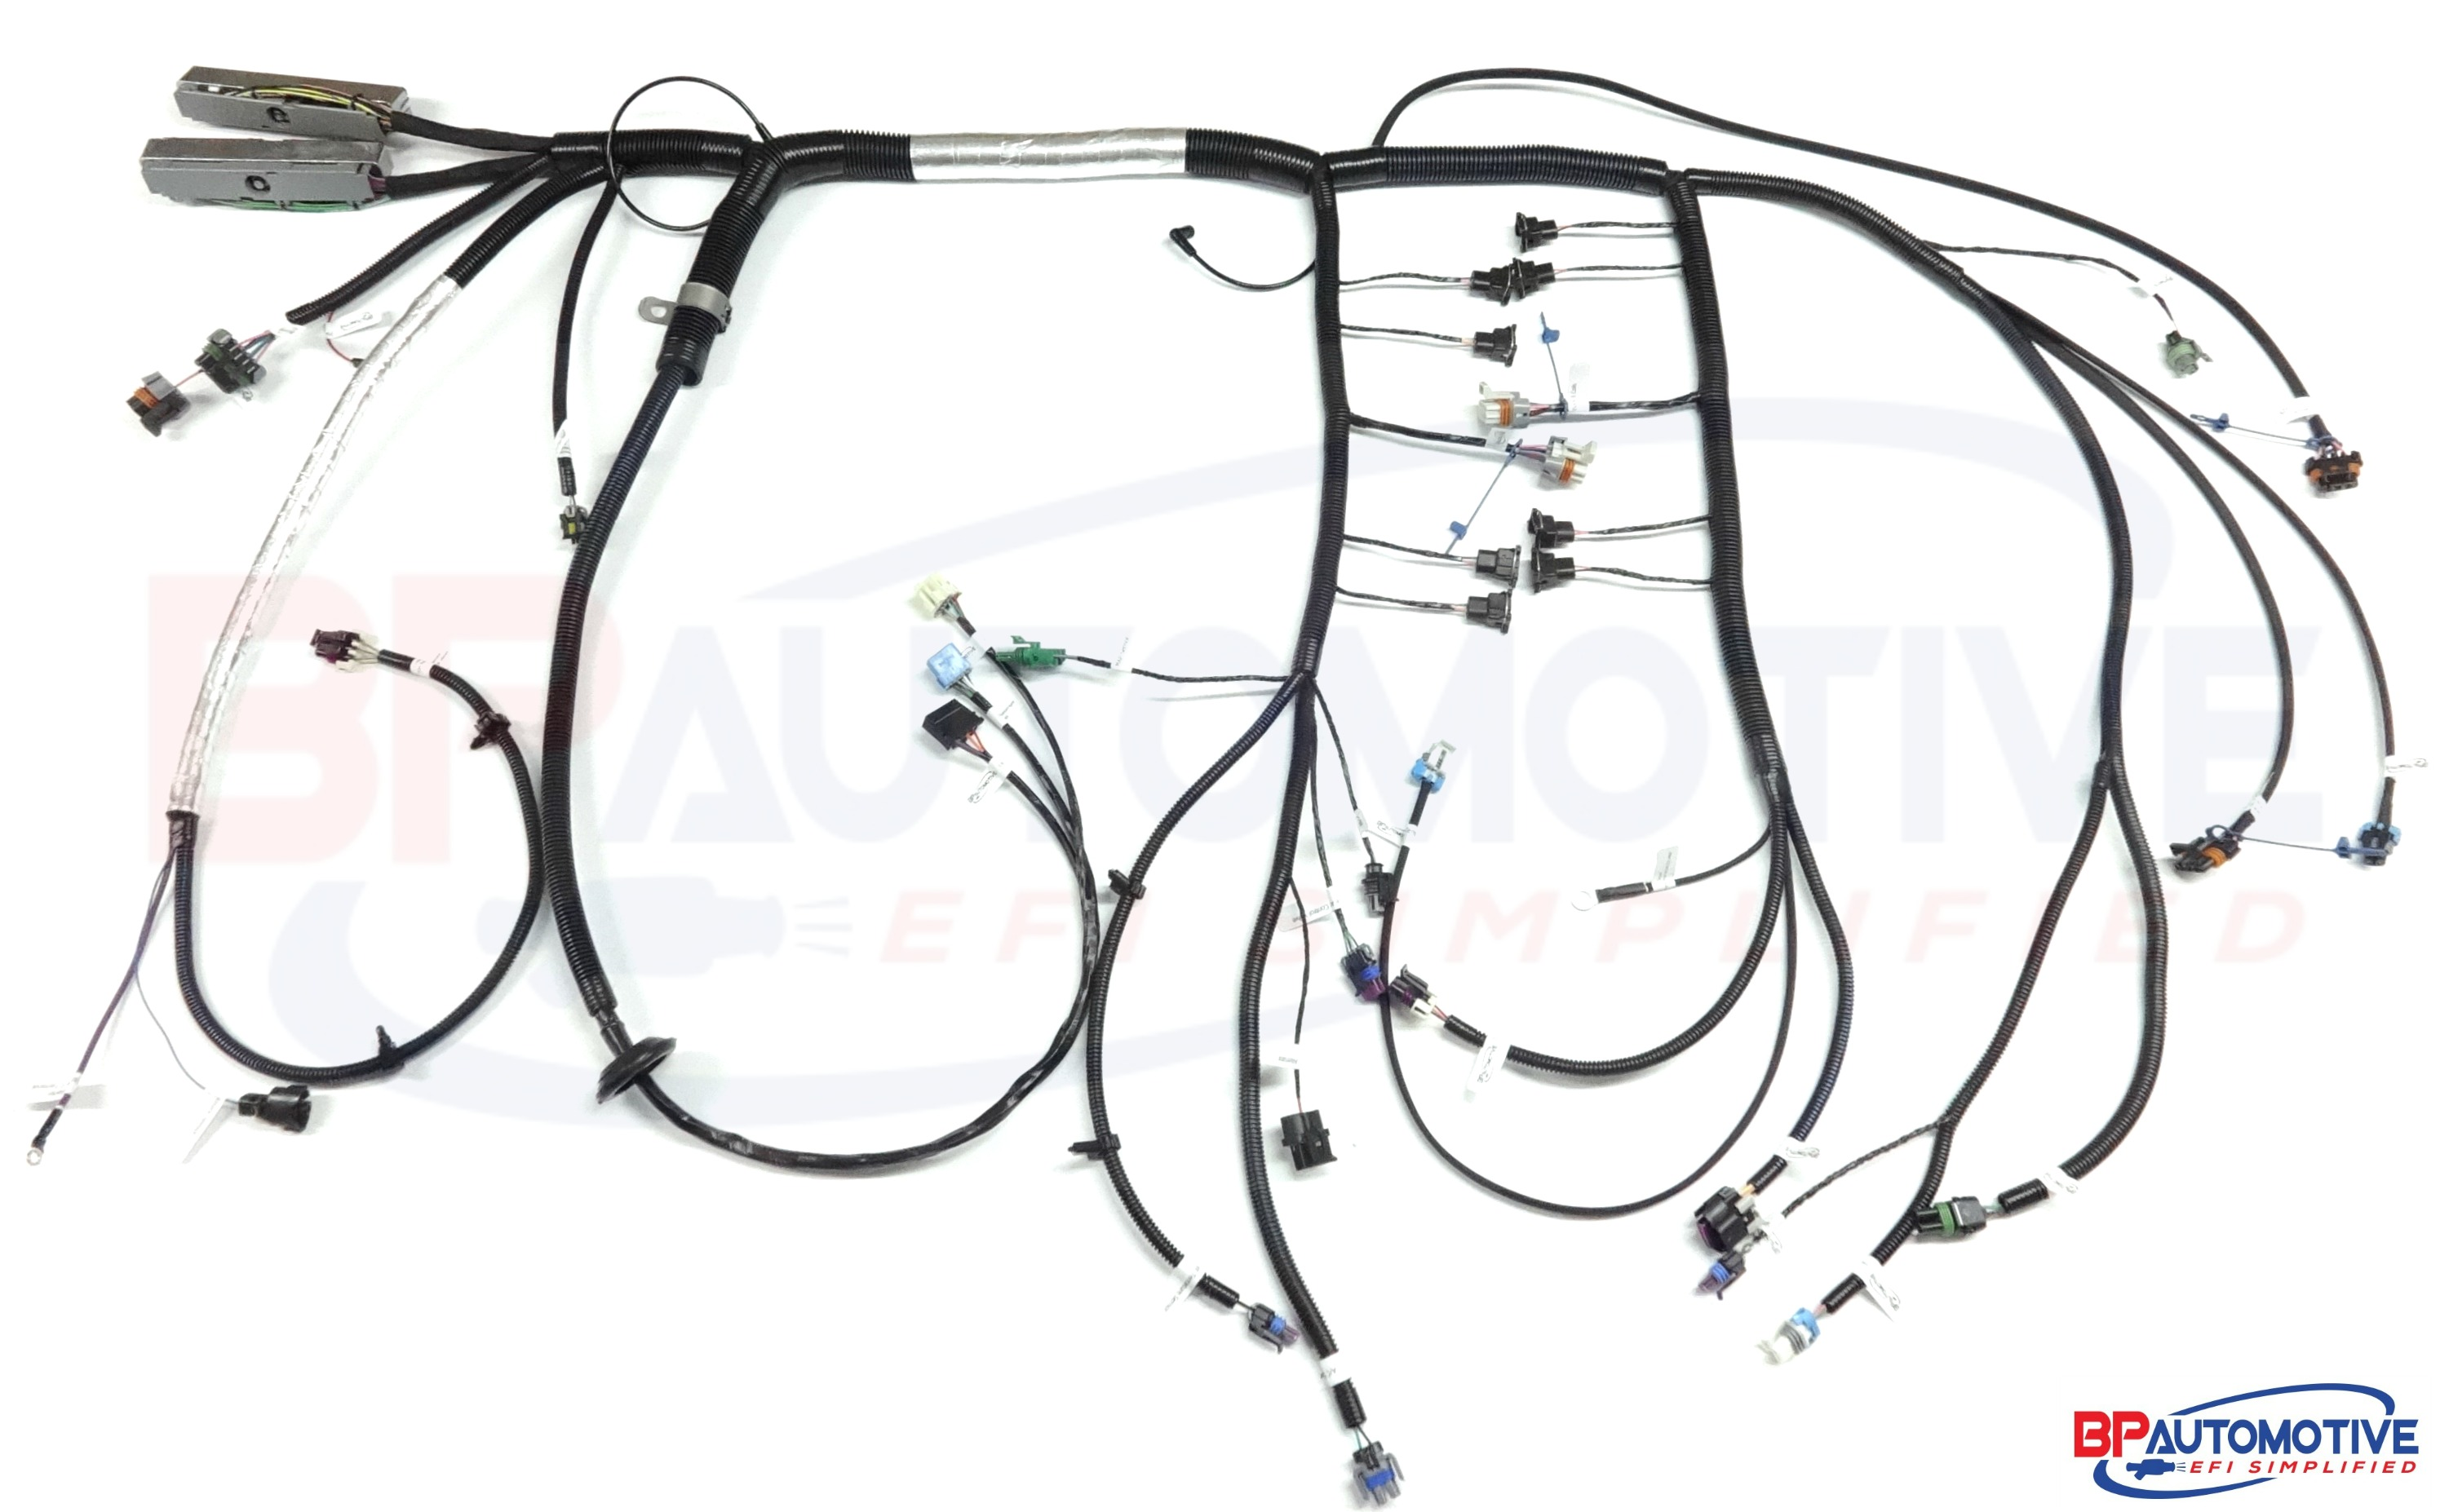 Lt1 F Body Plug And Play 24x Conversion Harness